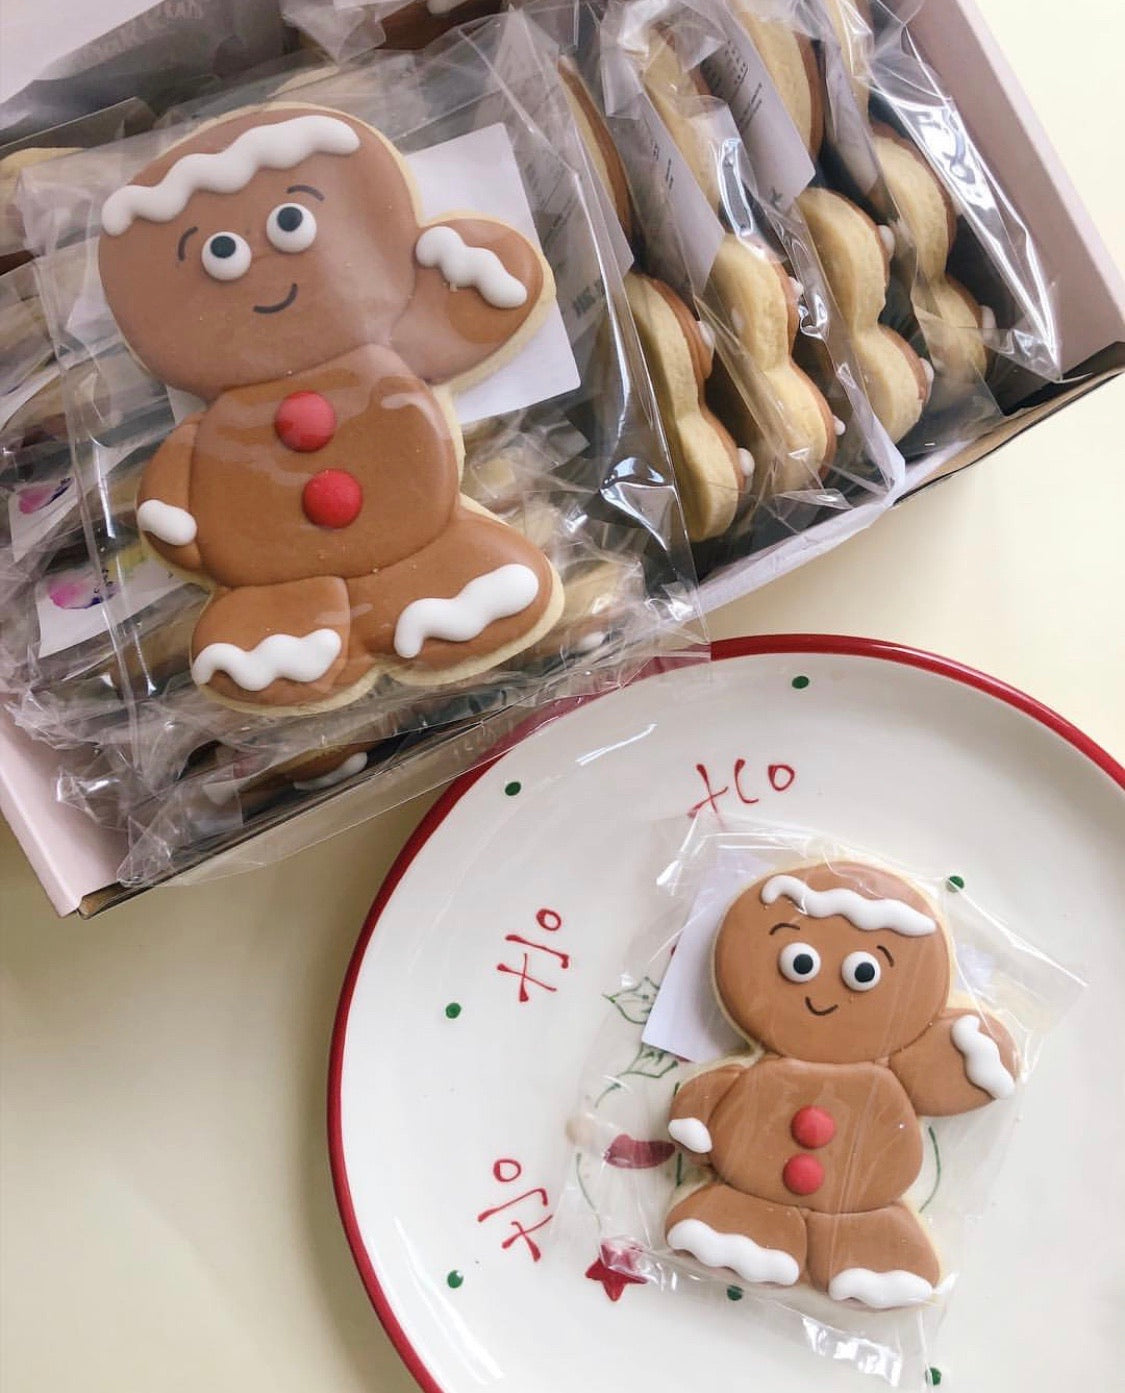 Here comes the Gingerbread Man! - Sugar Rush by Steph